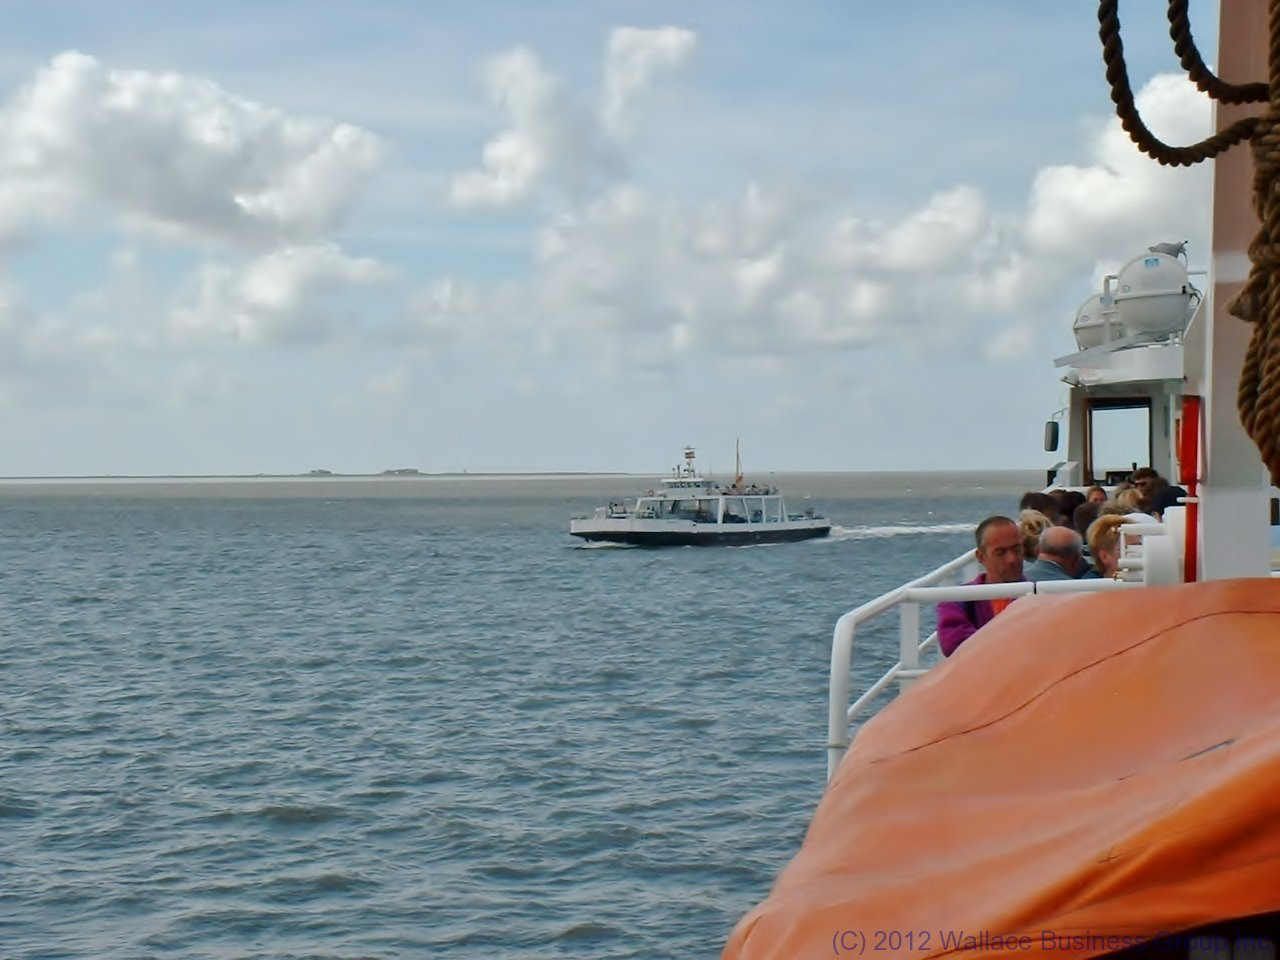 The Ferry from Dagebüll to Wik and Amrum